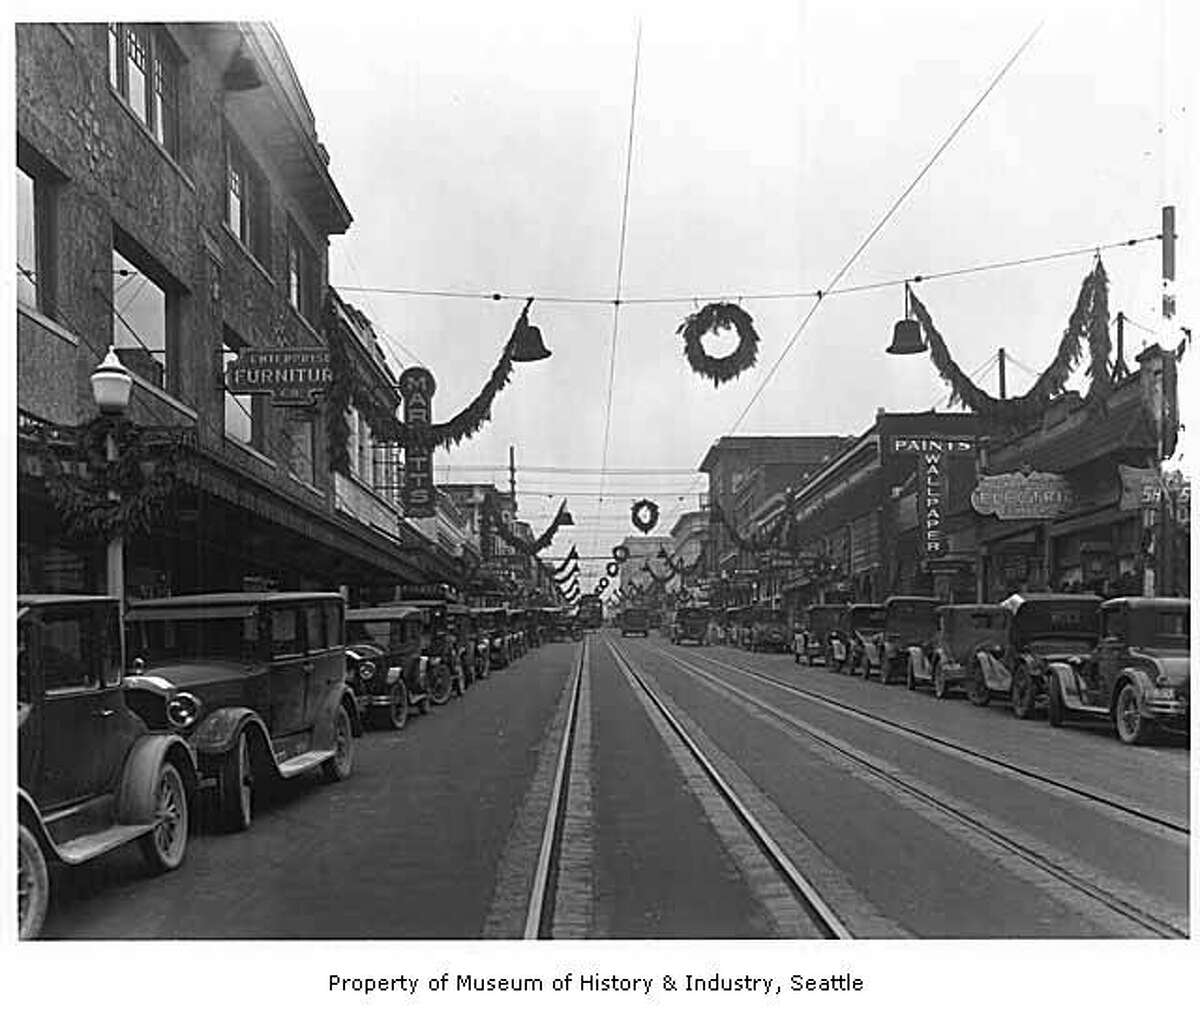 This photo from 1926 shows University Way, or The Ave, decorated for Christmas. Photo courtesy MOHAI, PEMCO Webster and Stevens Collection, image number 1983.10.3434.2.